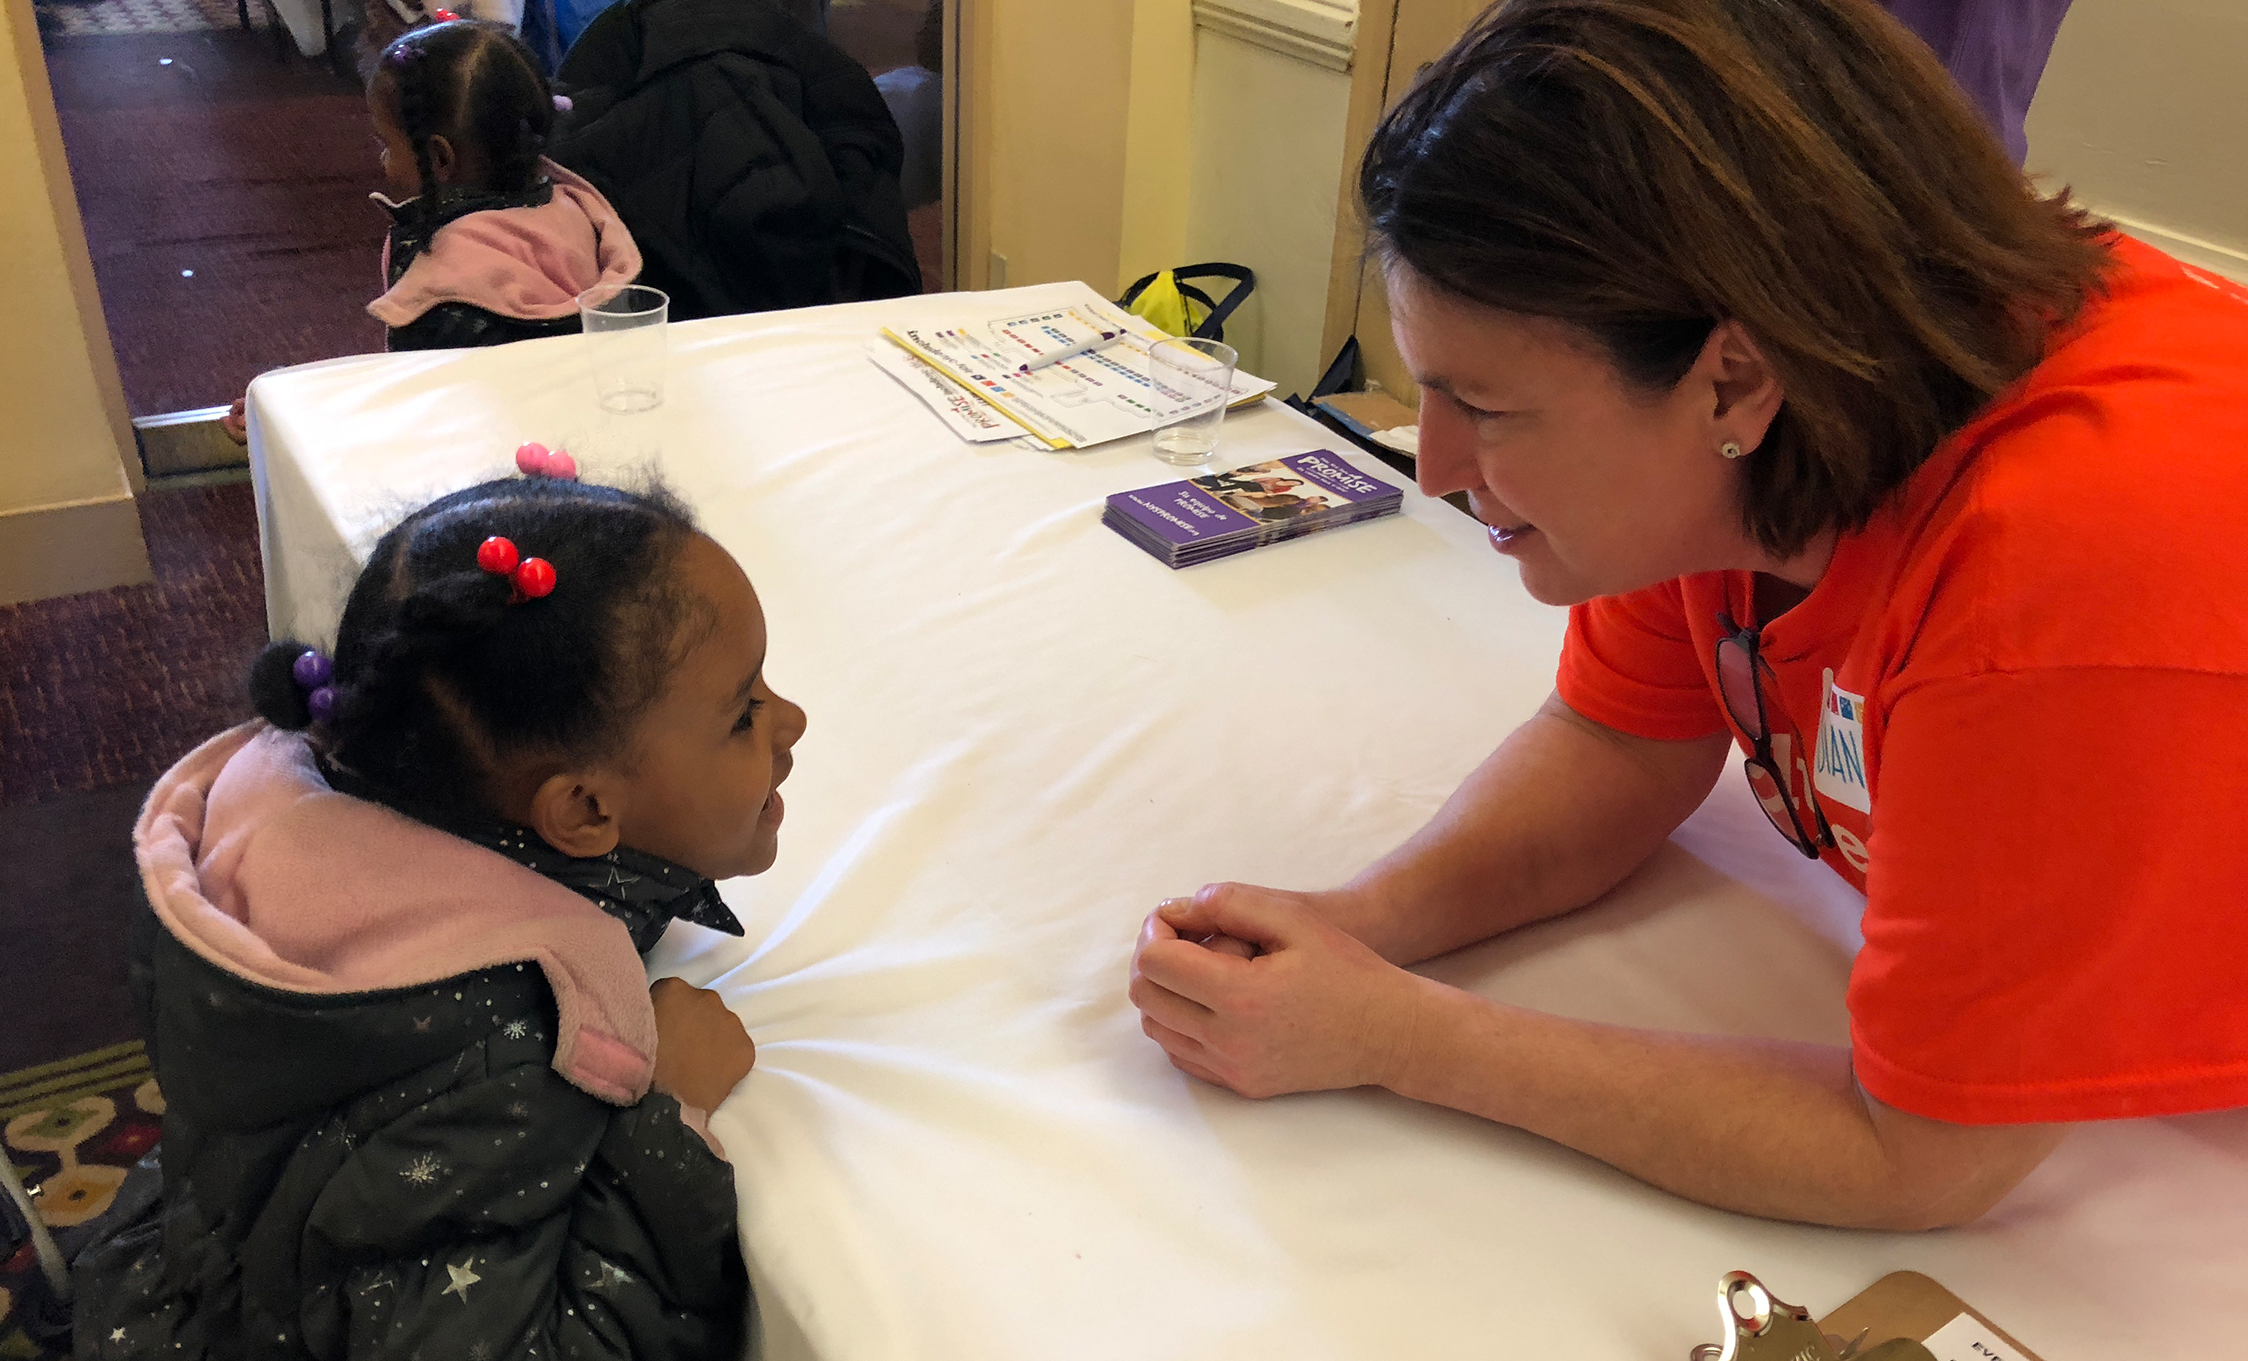 INCLUDEnyc's Diana Biagioli is bending down talking to a young girl